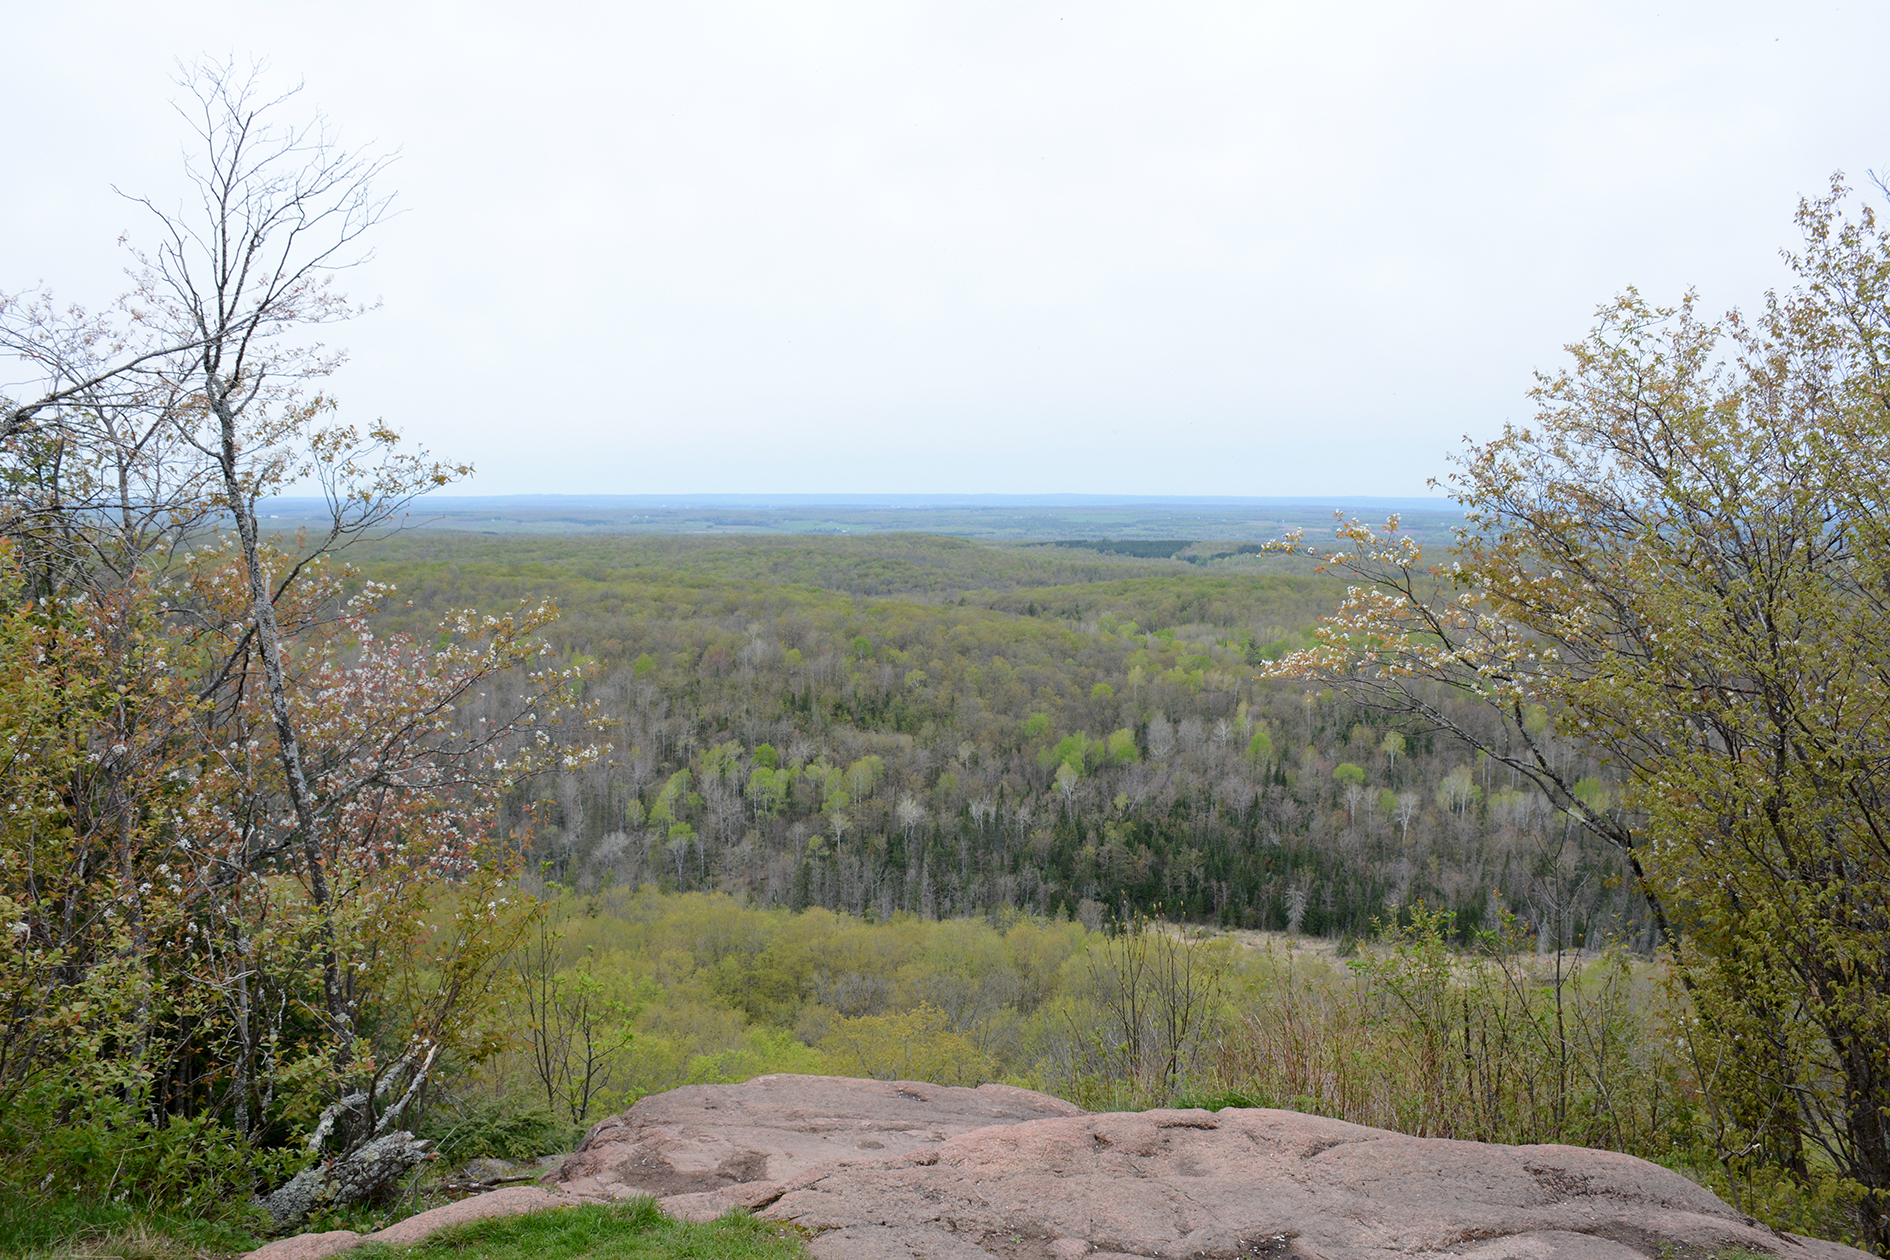 2015-05-14_stpetersdome_overlook2